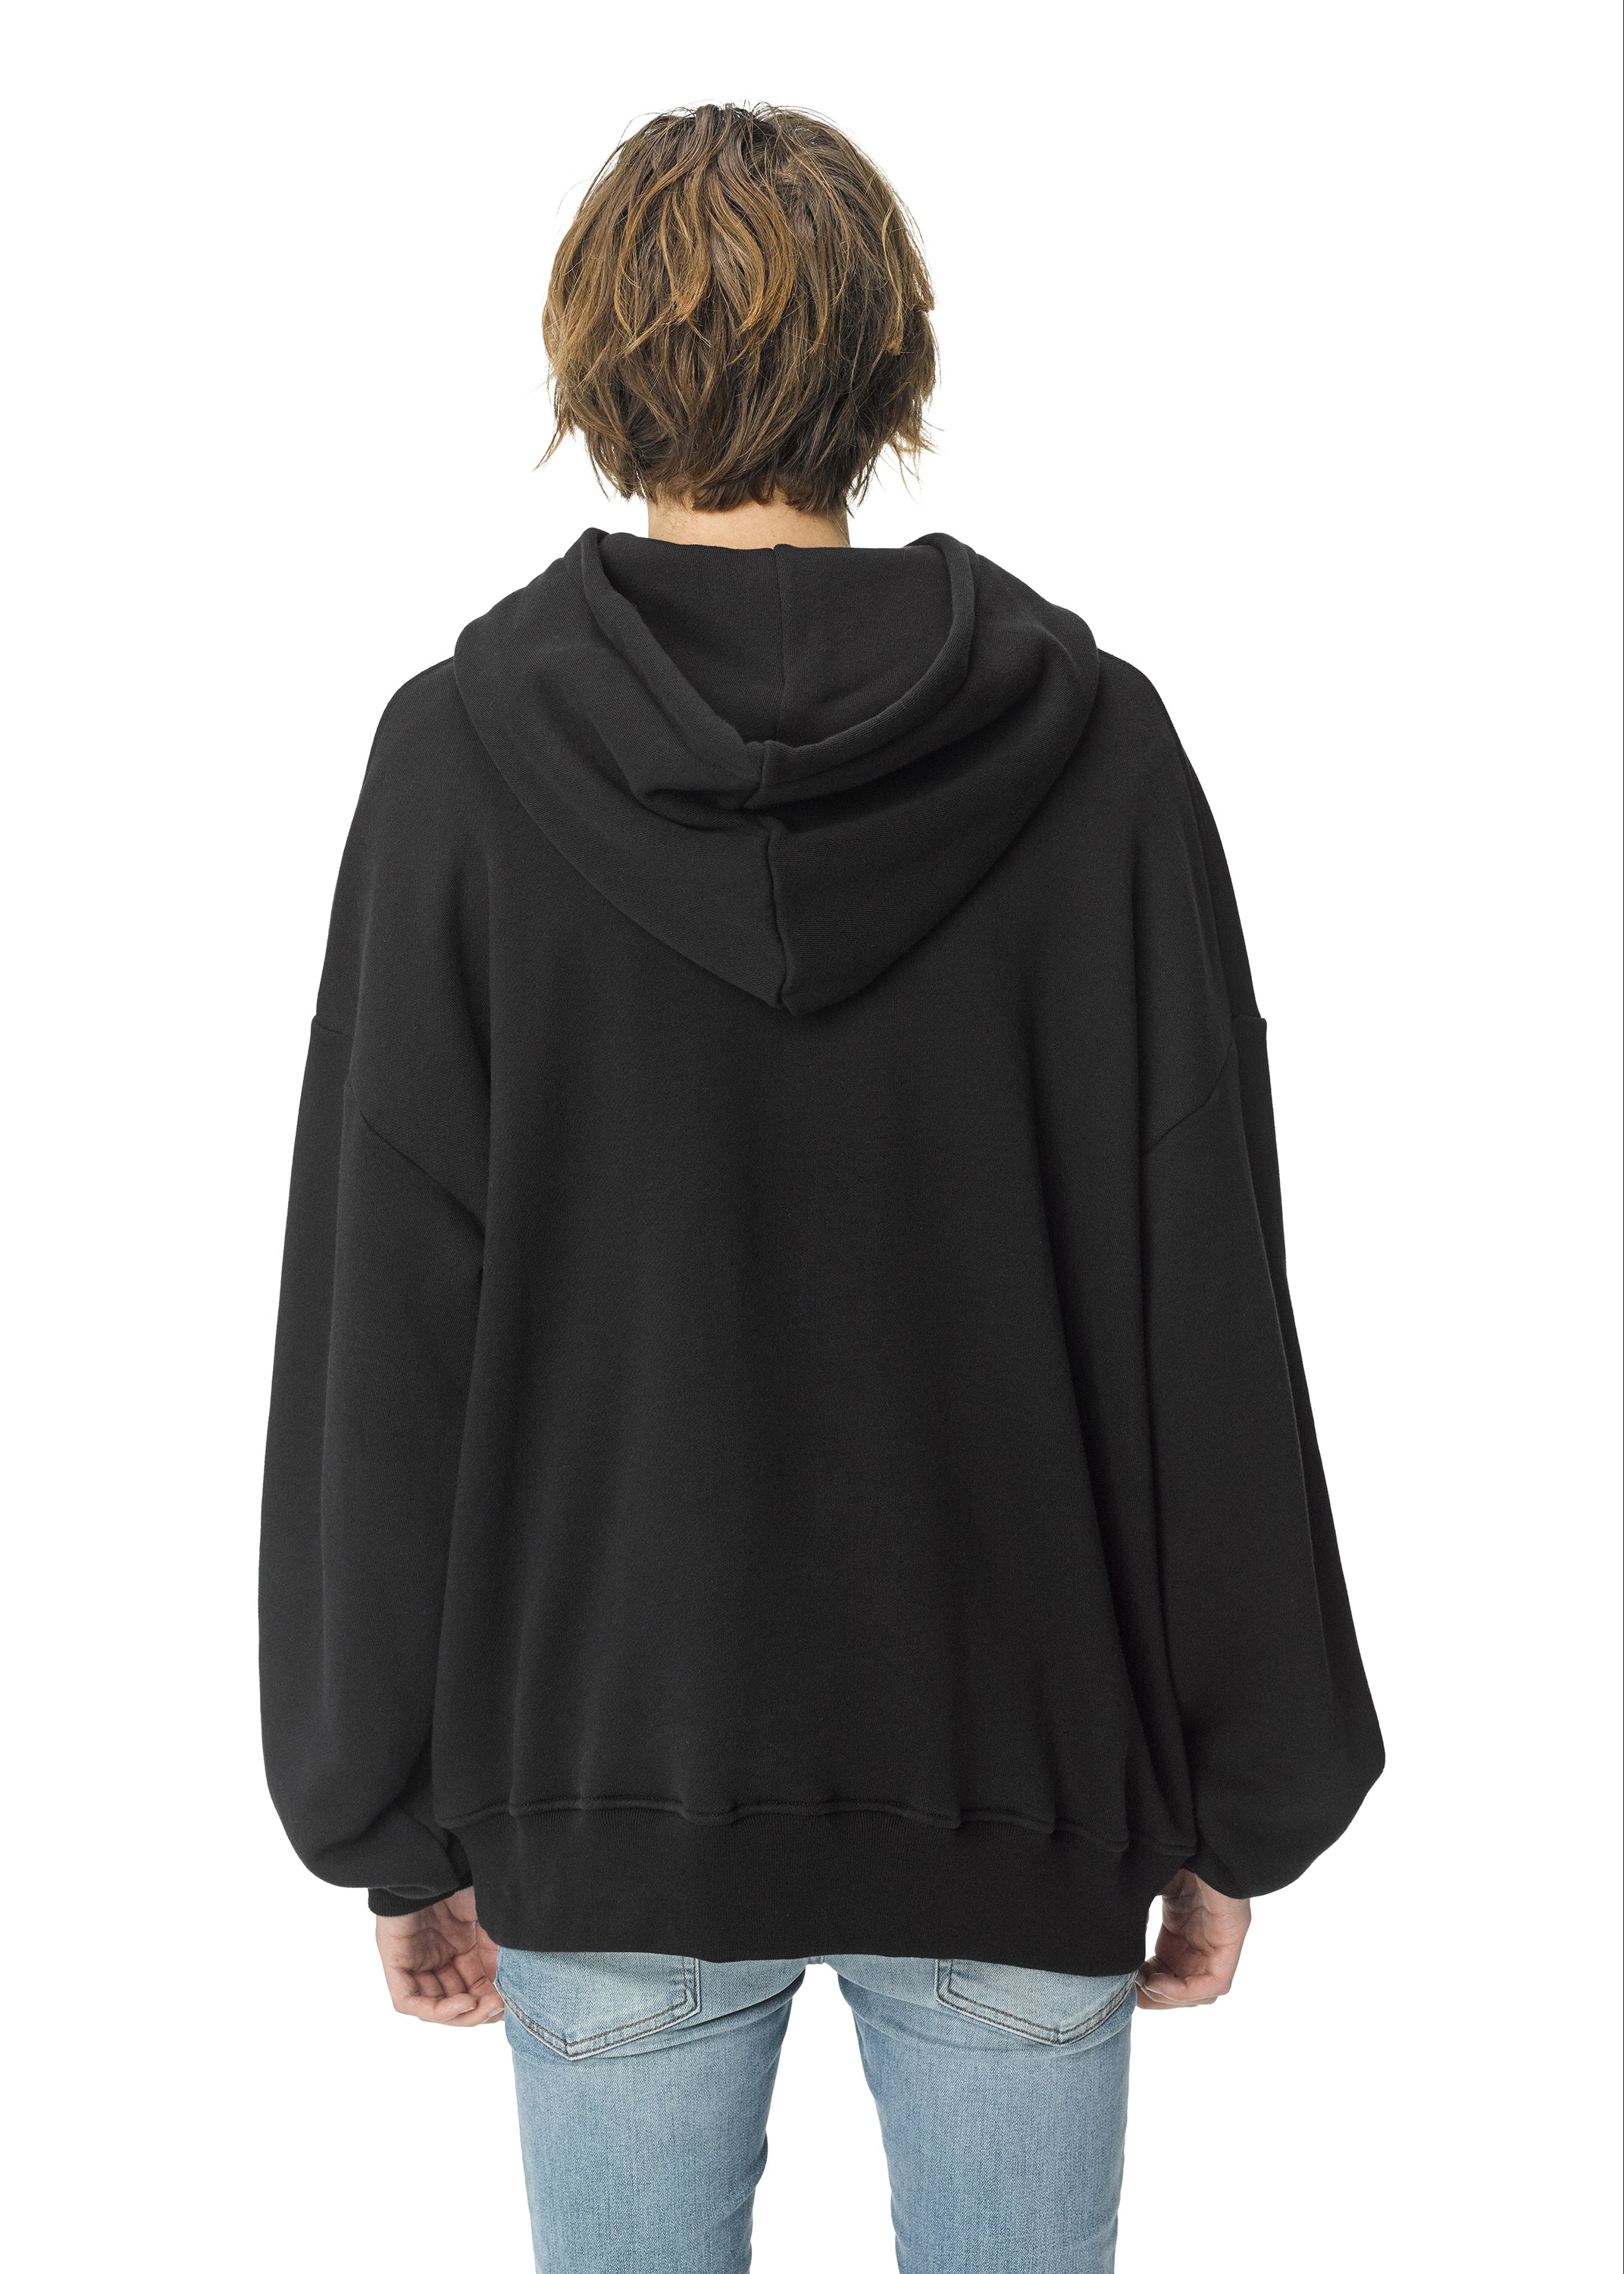 been-through-the-fire-hoodie-black-image-5